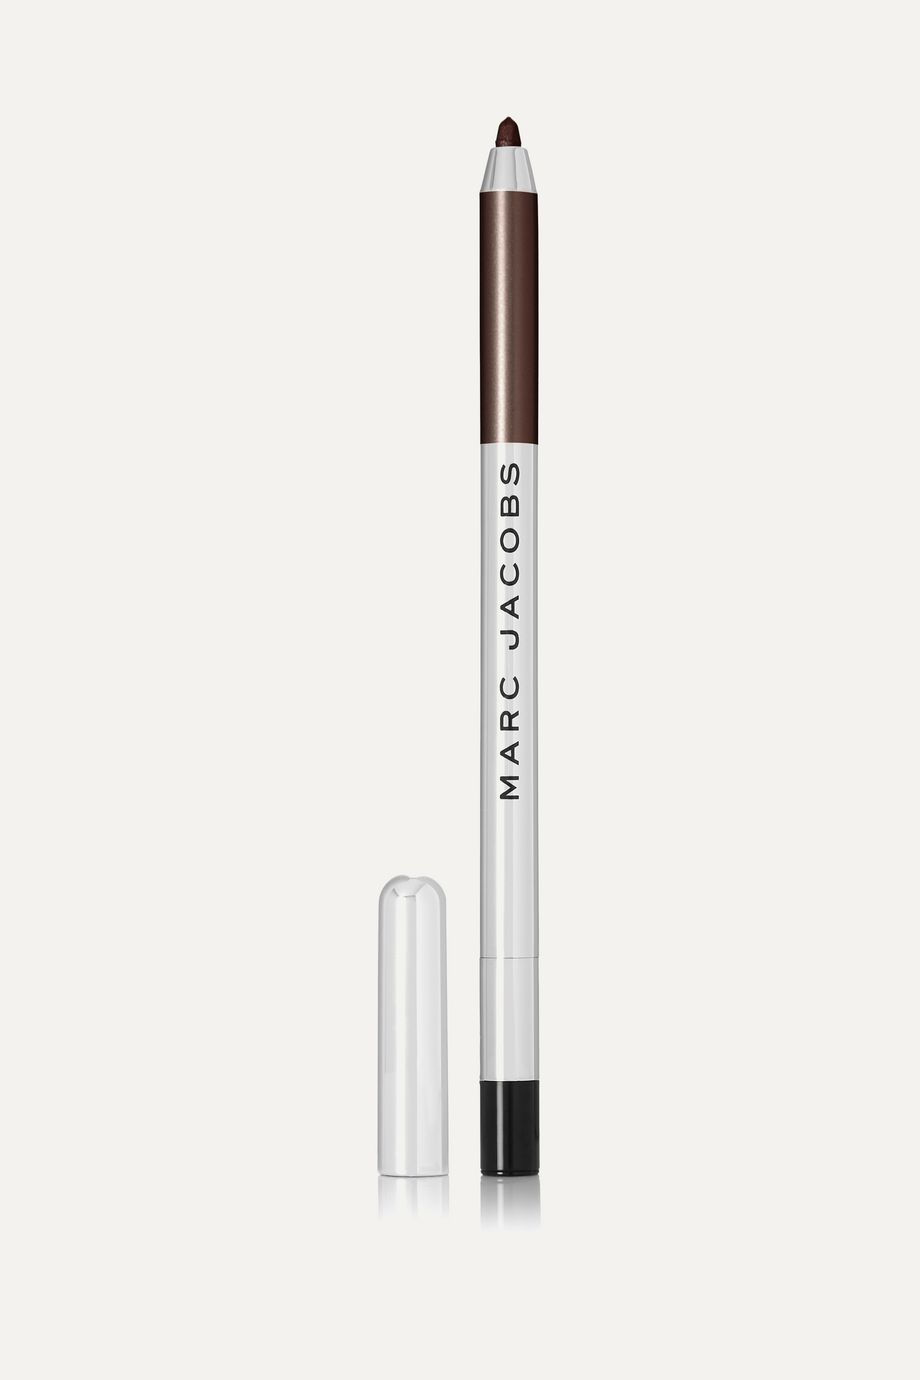 Marc Jacobs Beauty Highliner Gel Eye Crayon - Brown(Out) 54